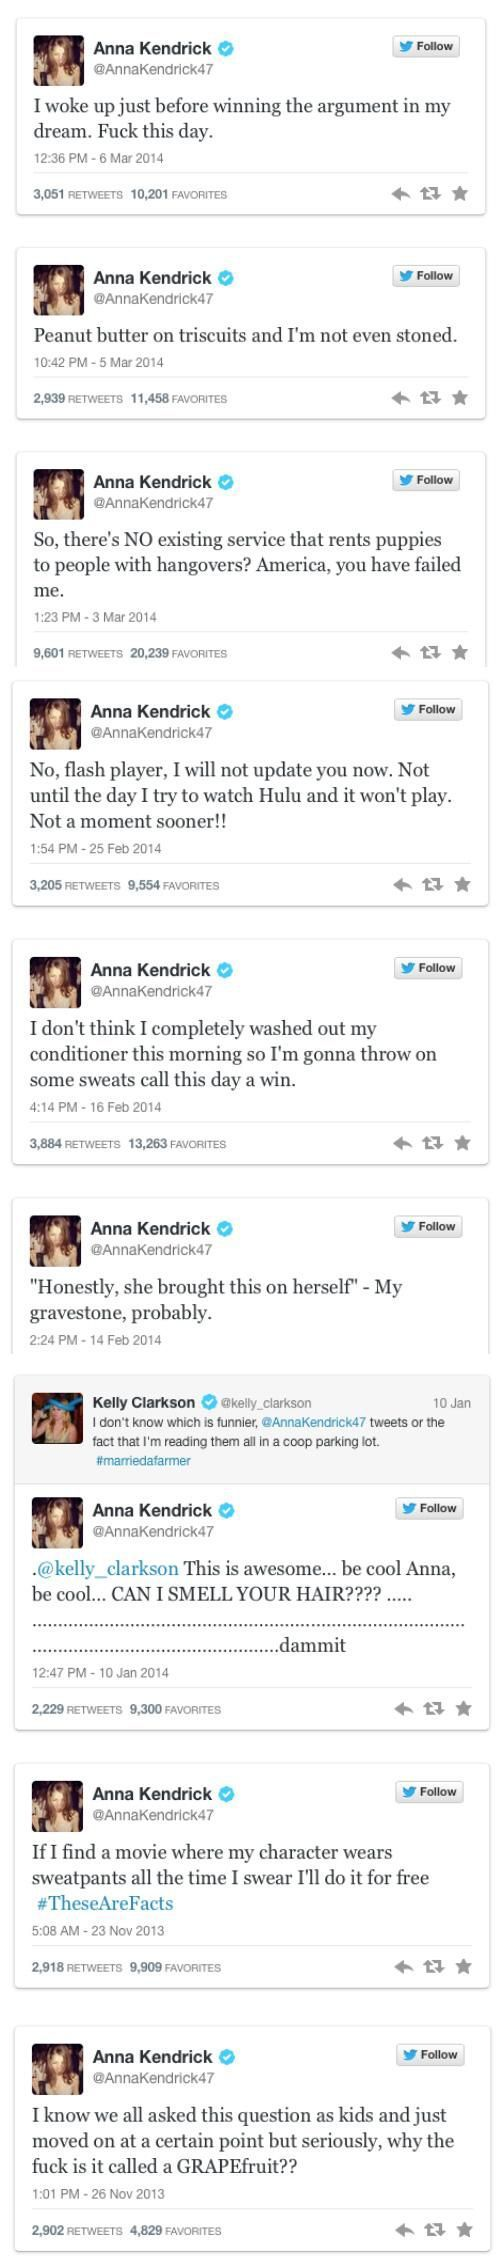 Anna Kendrick tweets the best shit ever